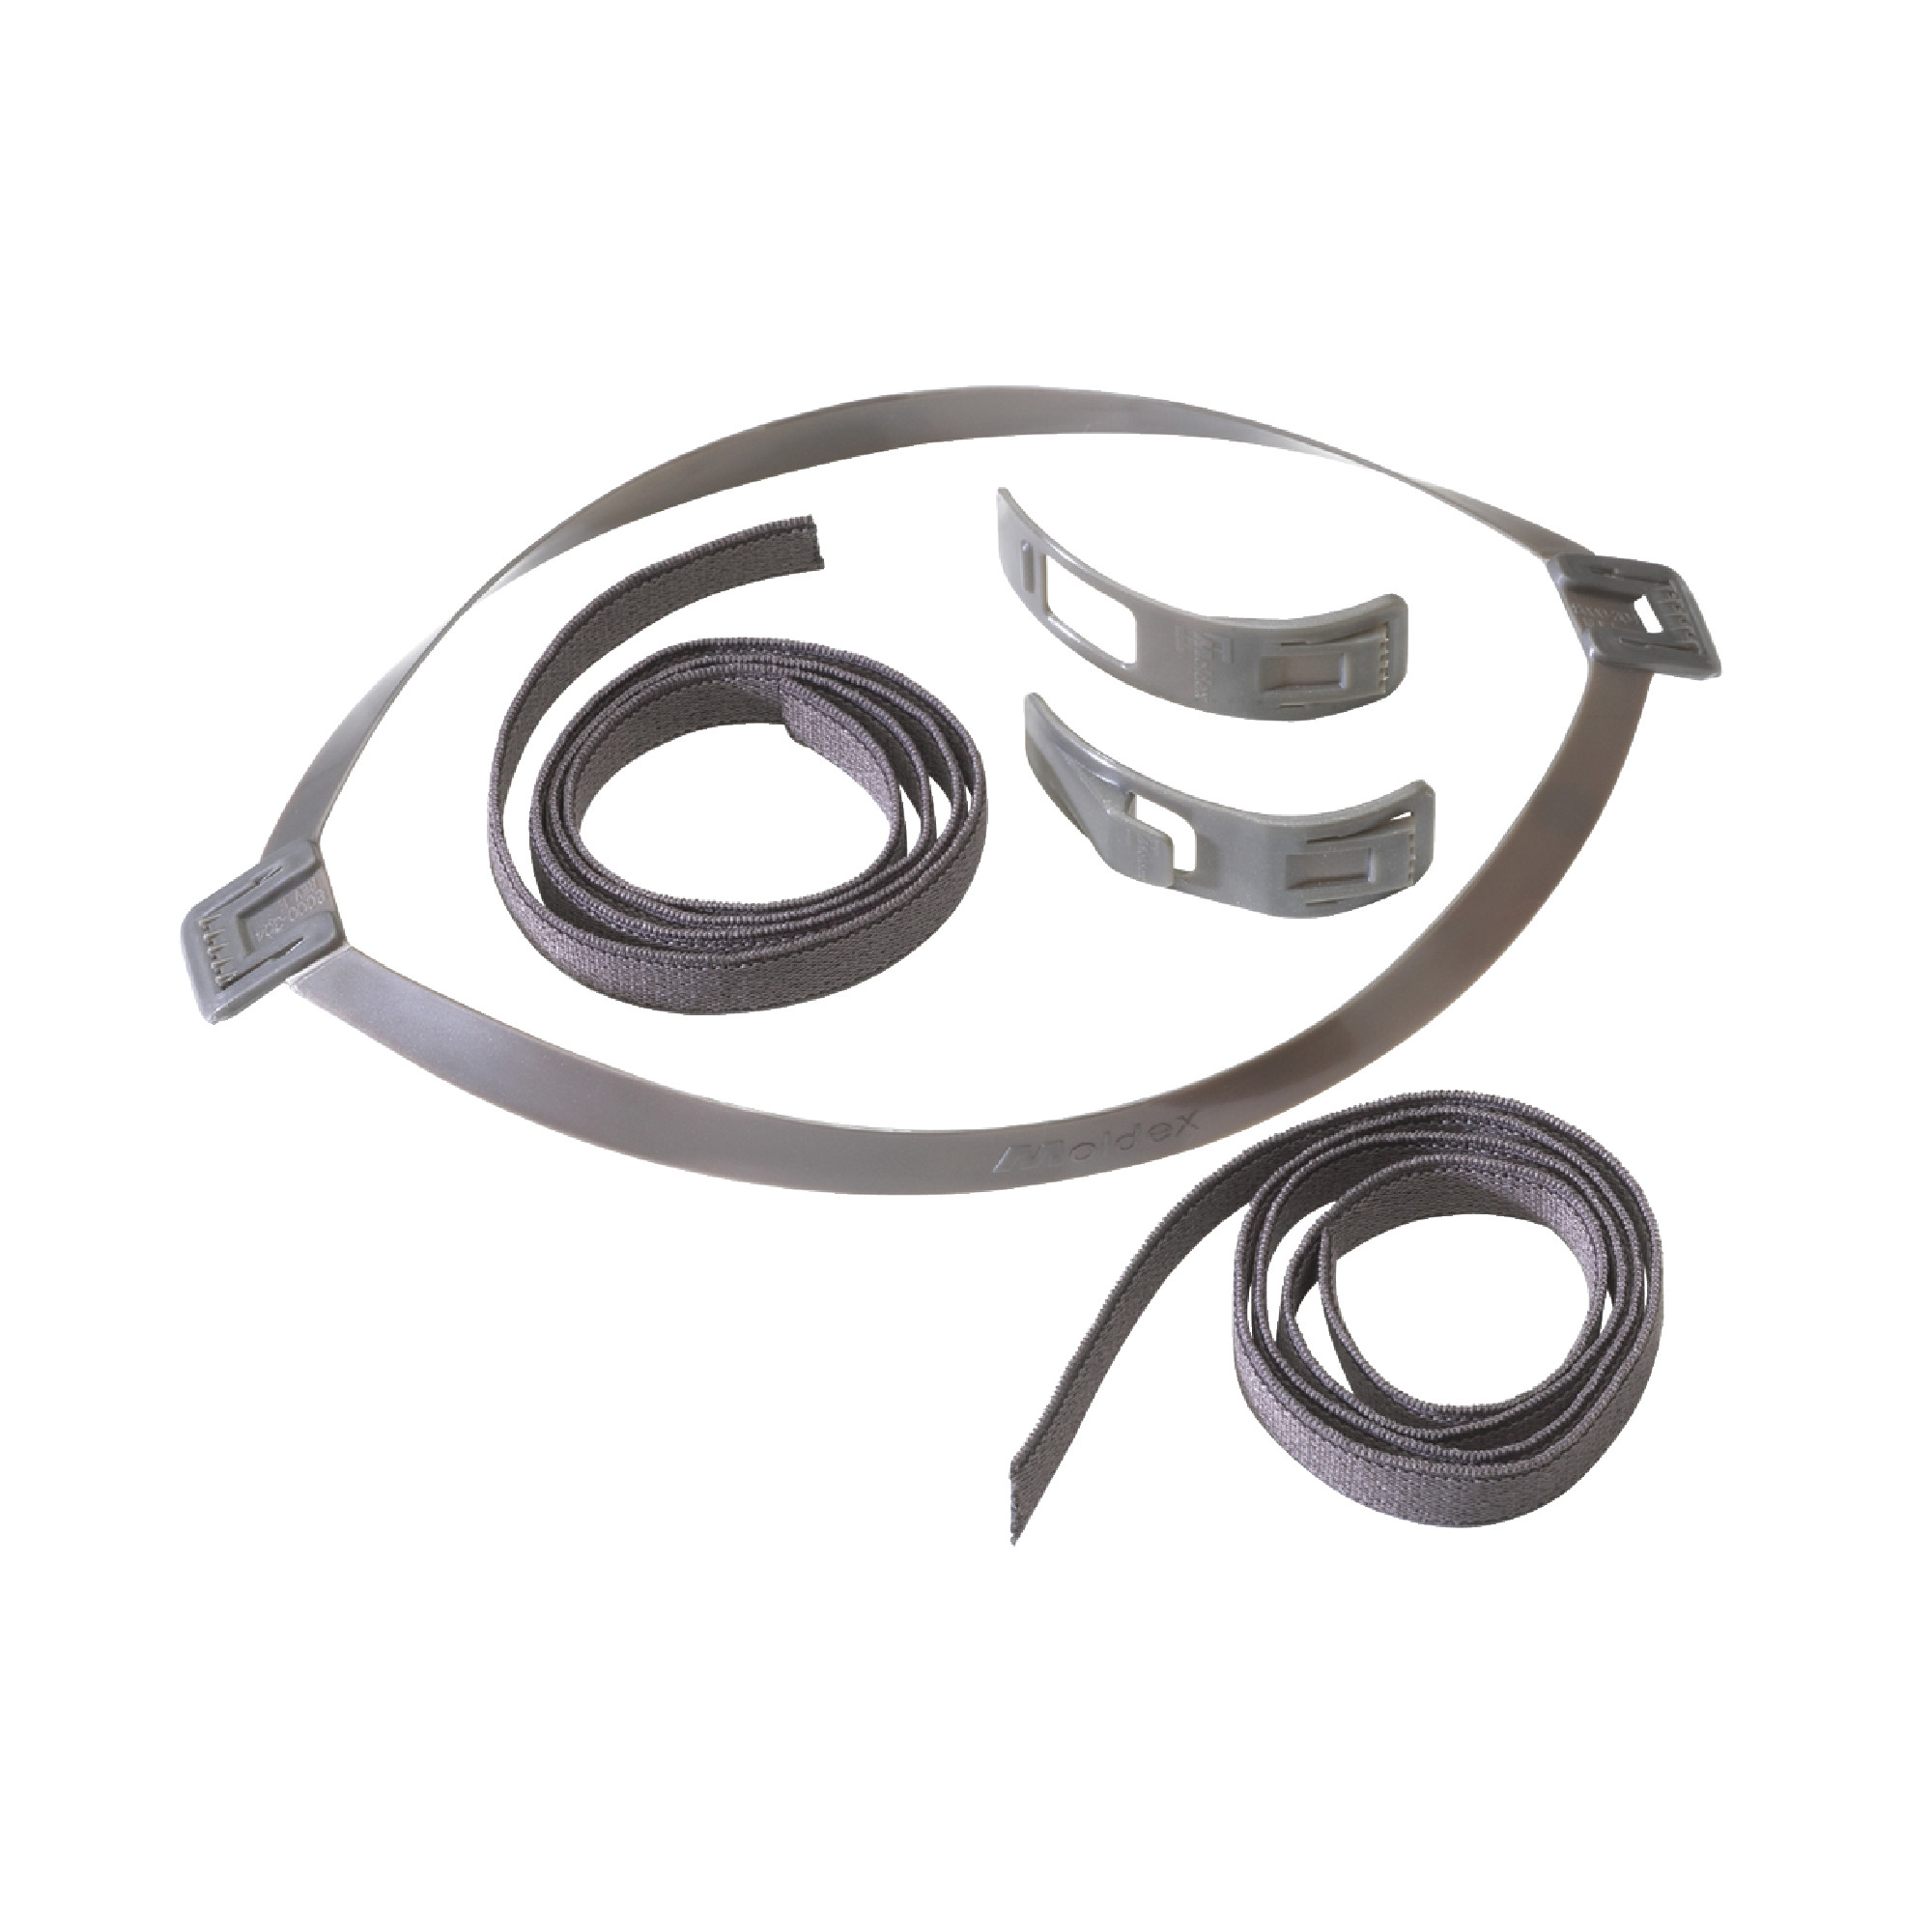 Replacement Parts: Head Strap Assembly (Includes Yokes, Buckles and 2 Straps) for 8000 Series Half Mask Respirator